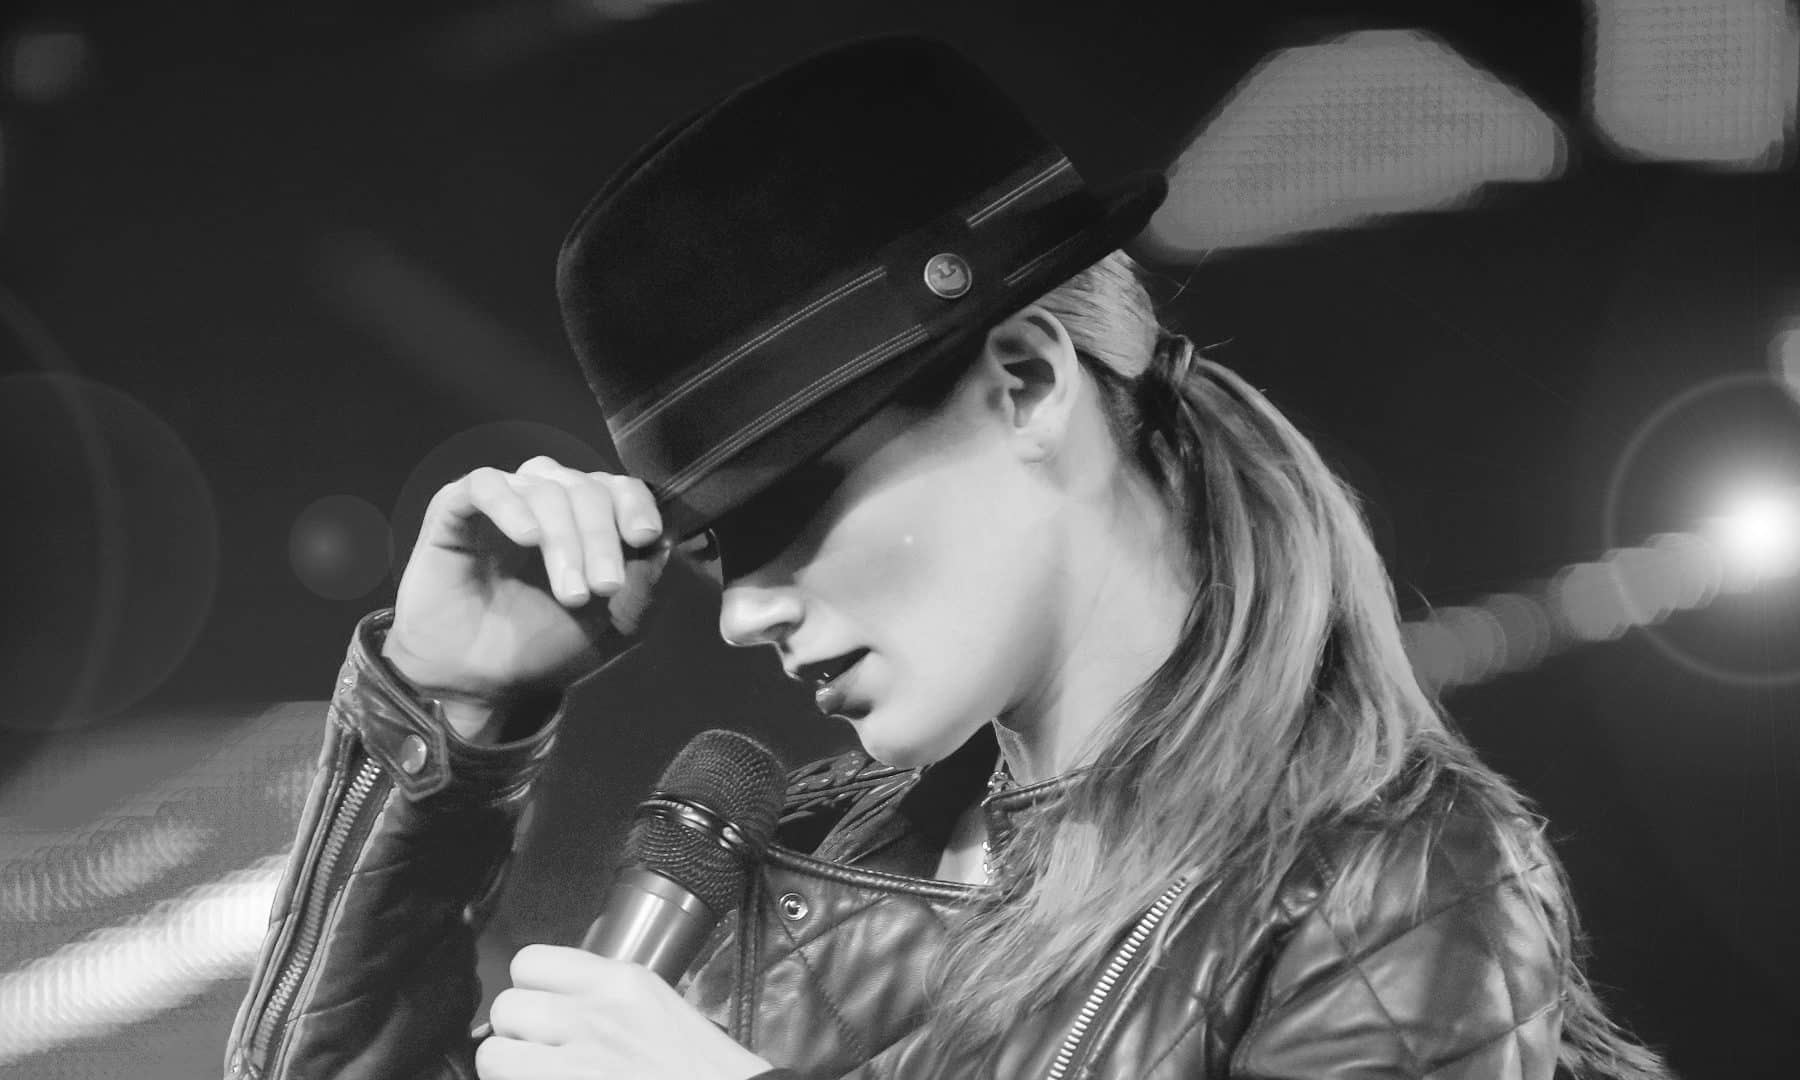 Singer of Soho band adjusts her hat while singing at Boston corporate event